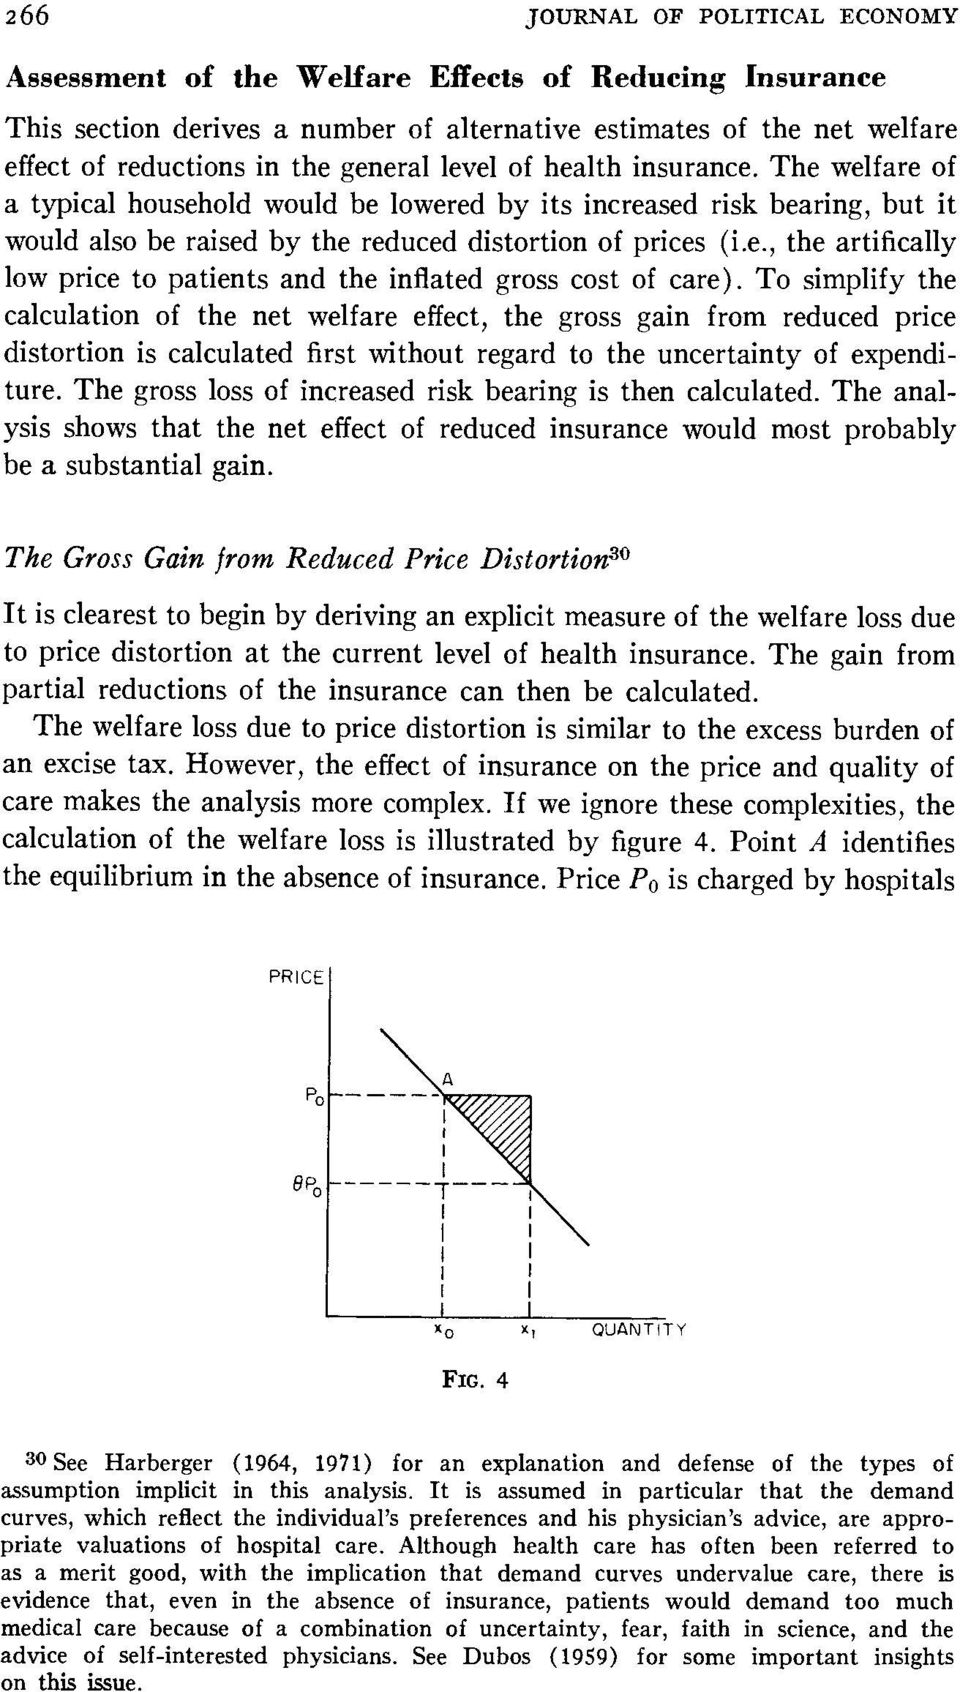 To simplify the calculation of the net welfare effect, the gross gain from reduced price distortion is calculated first without regard to the uncertainty of expenditure.